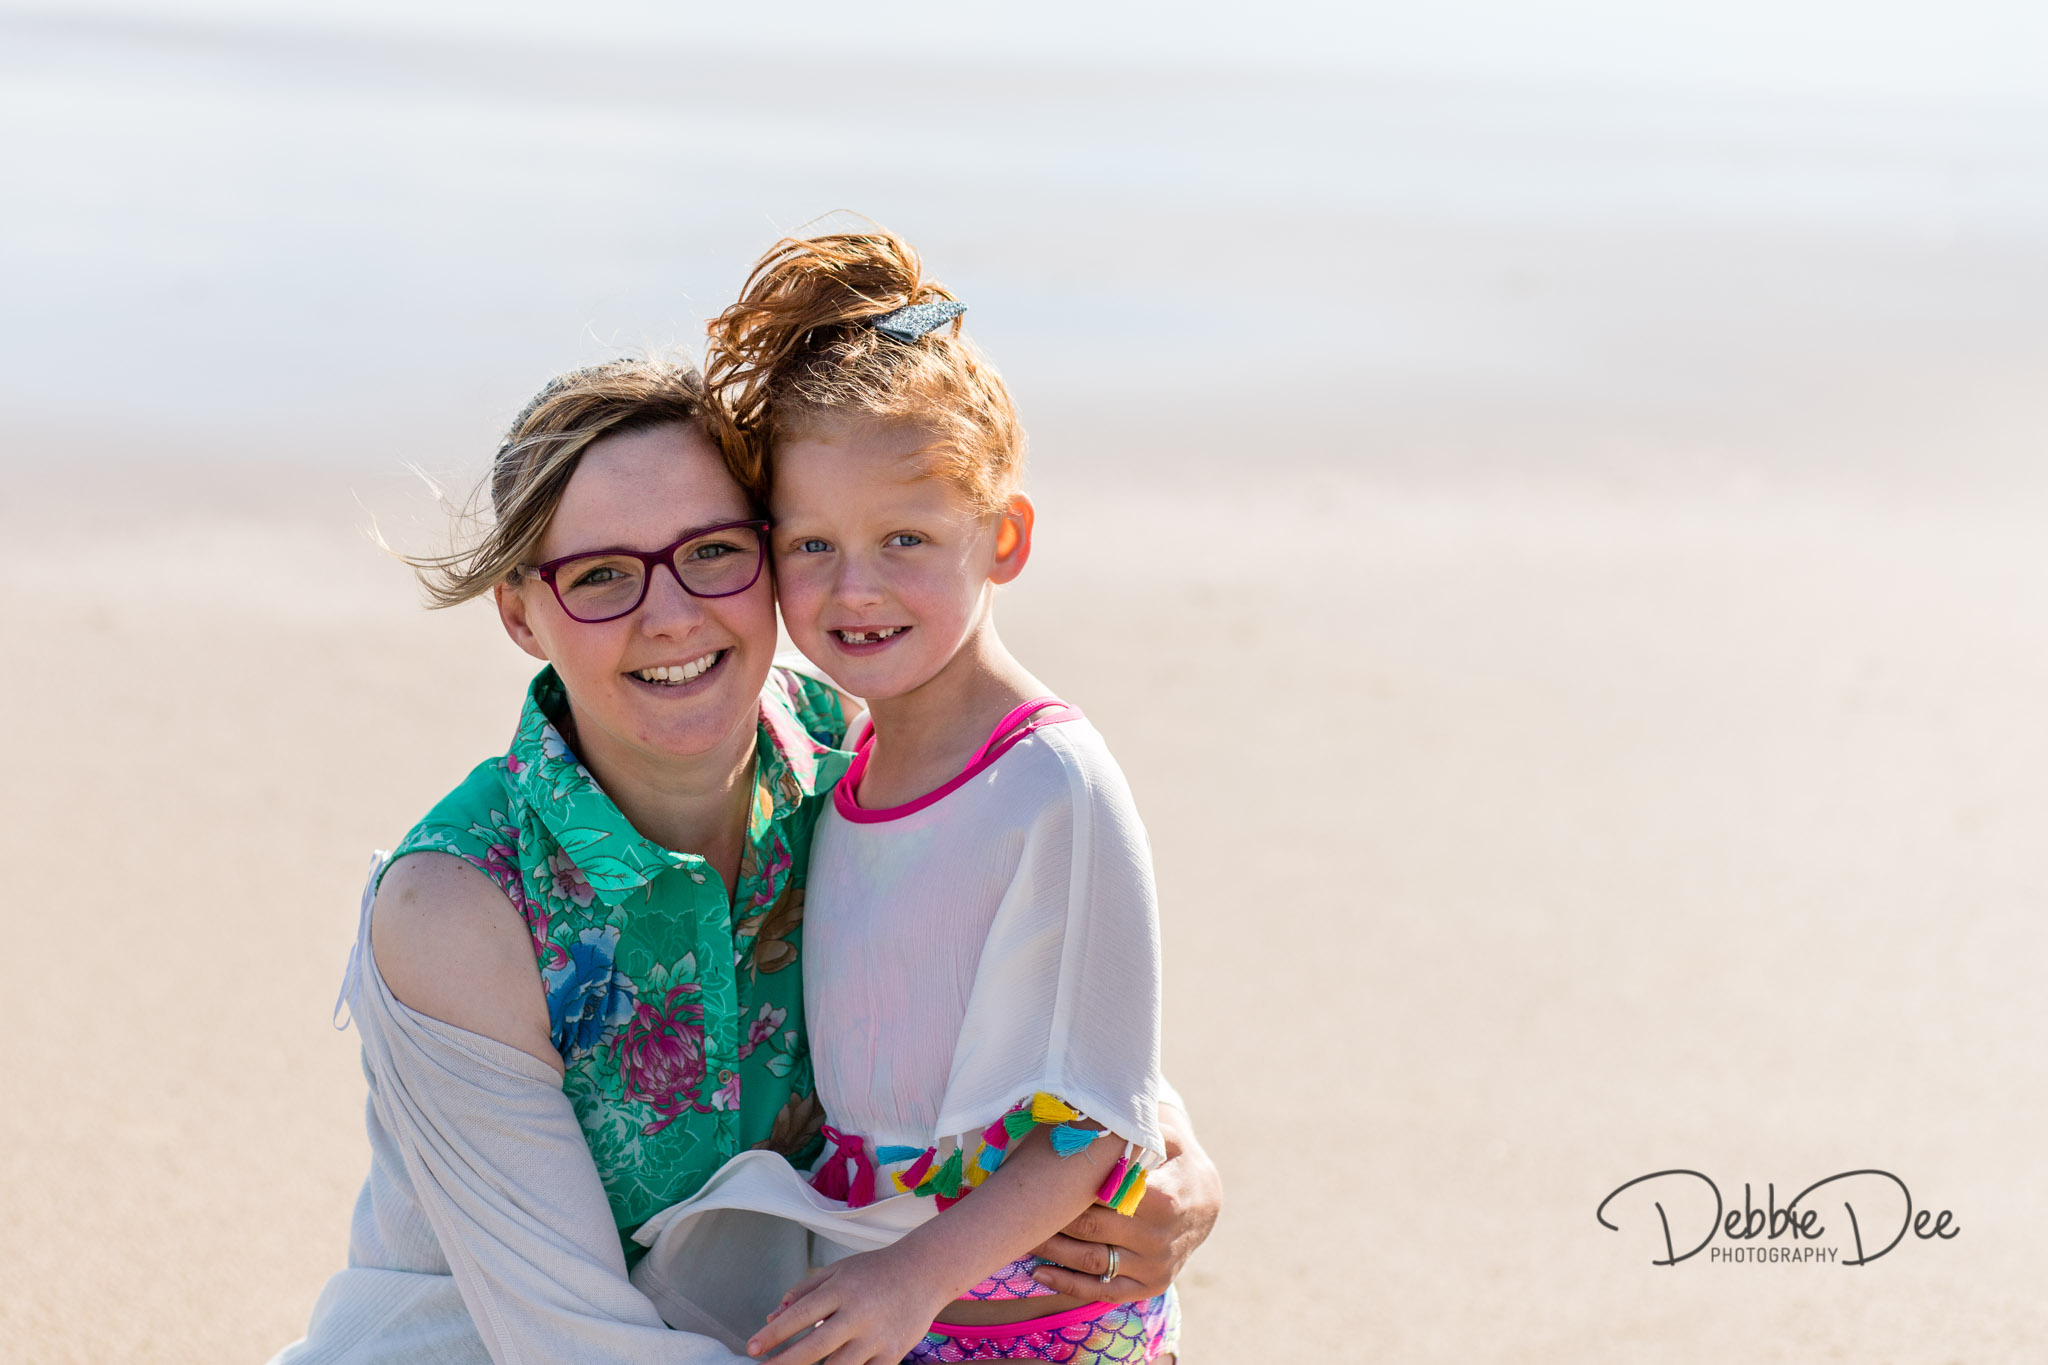 Family photography session banff beach aberdeenshire Debbie Dee Photography daughter and mum hugging